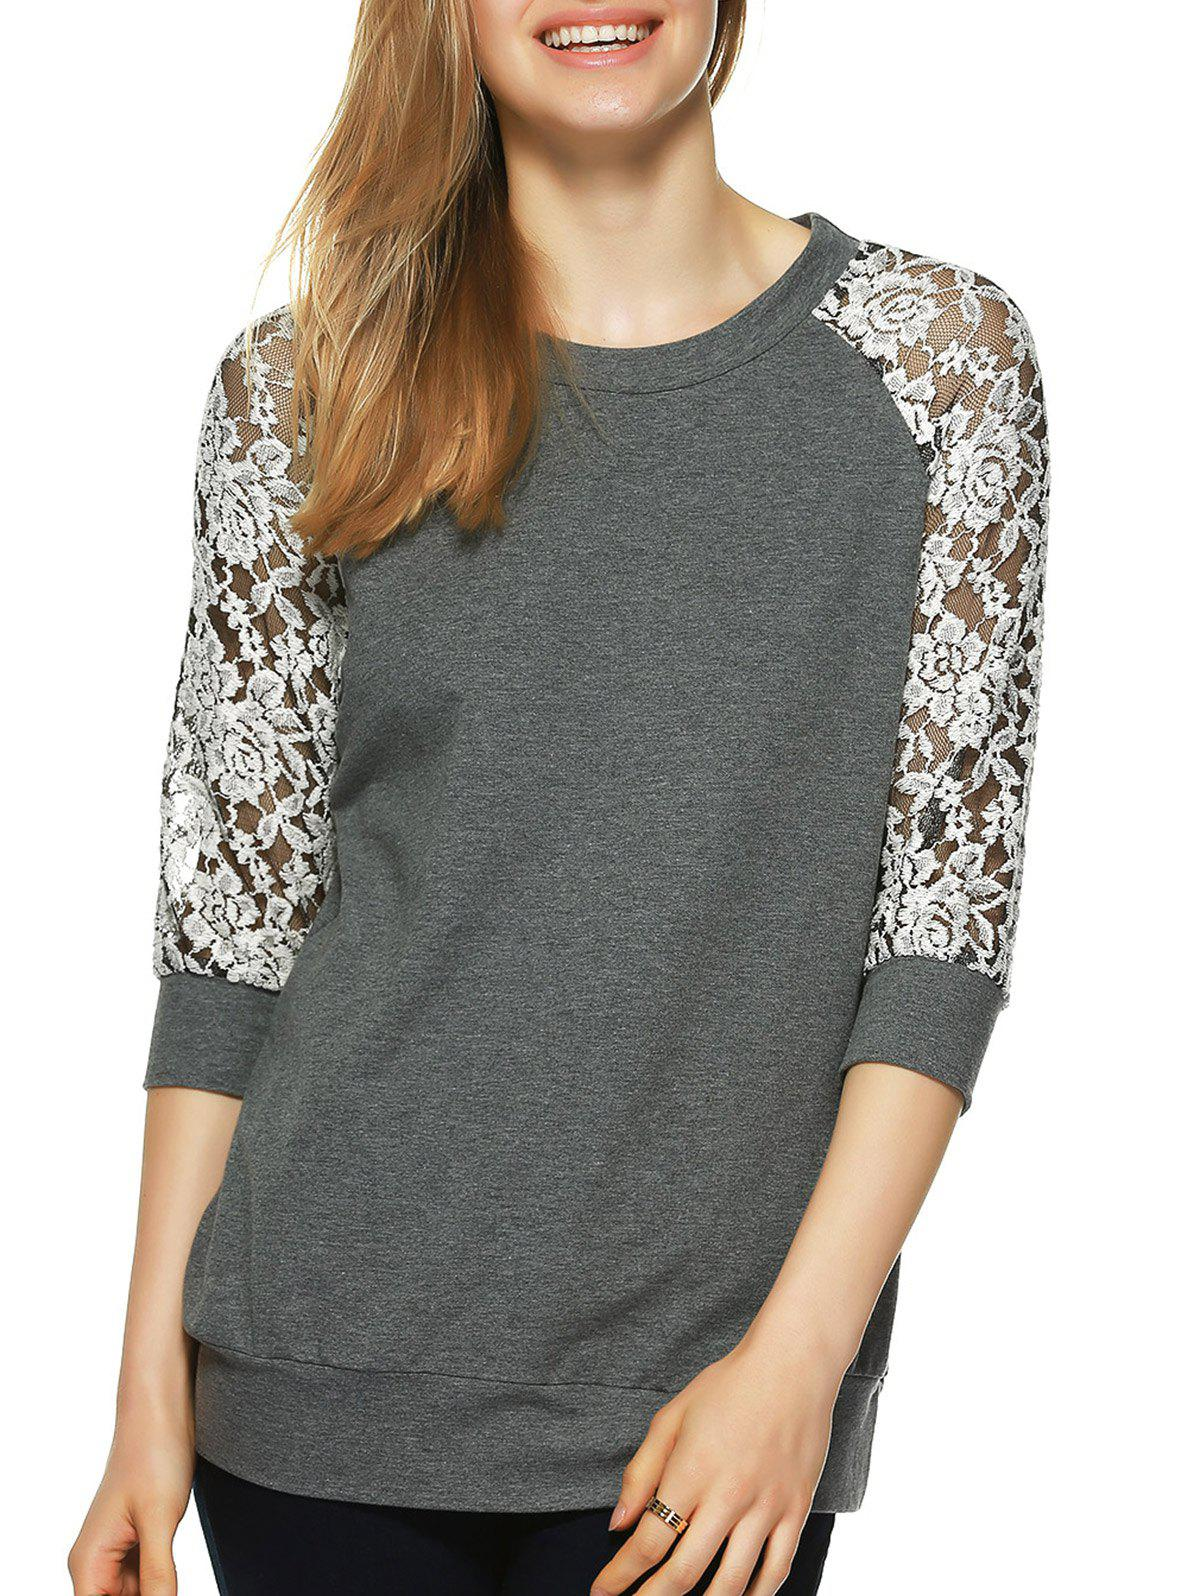 Round Neck Lace Splicing T-Shirt - GRAY M